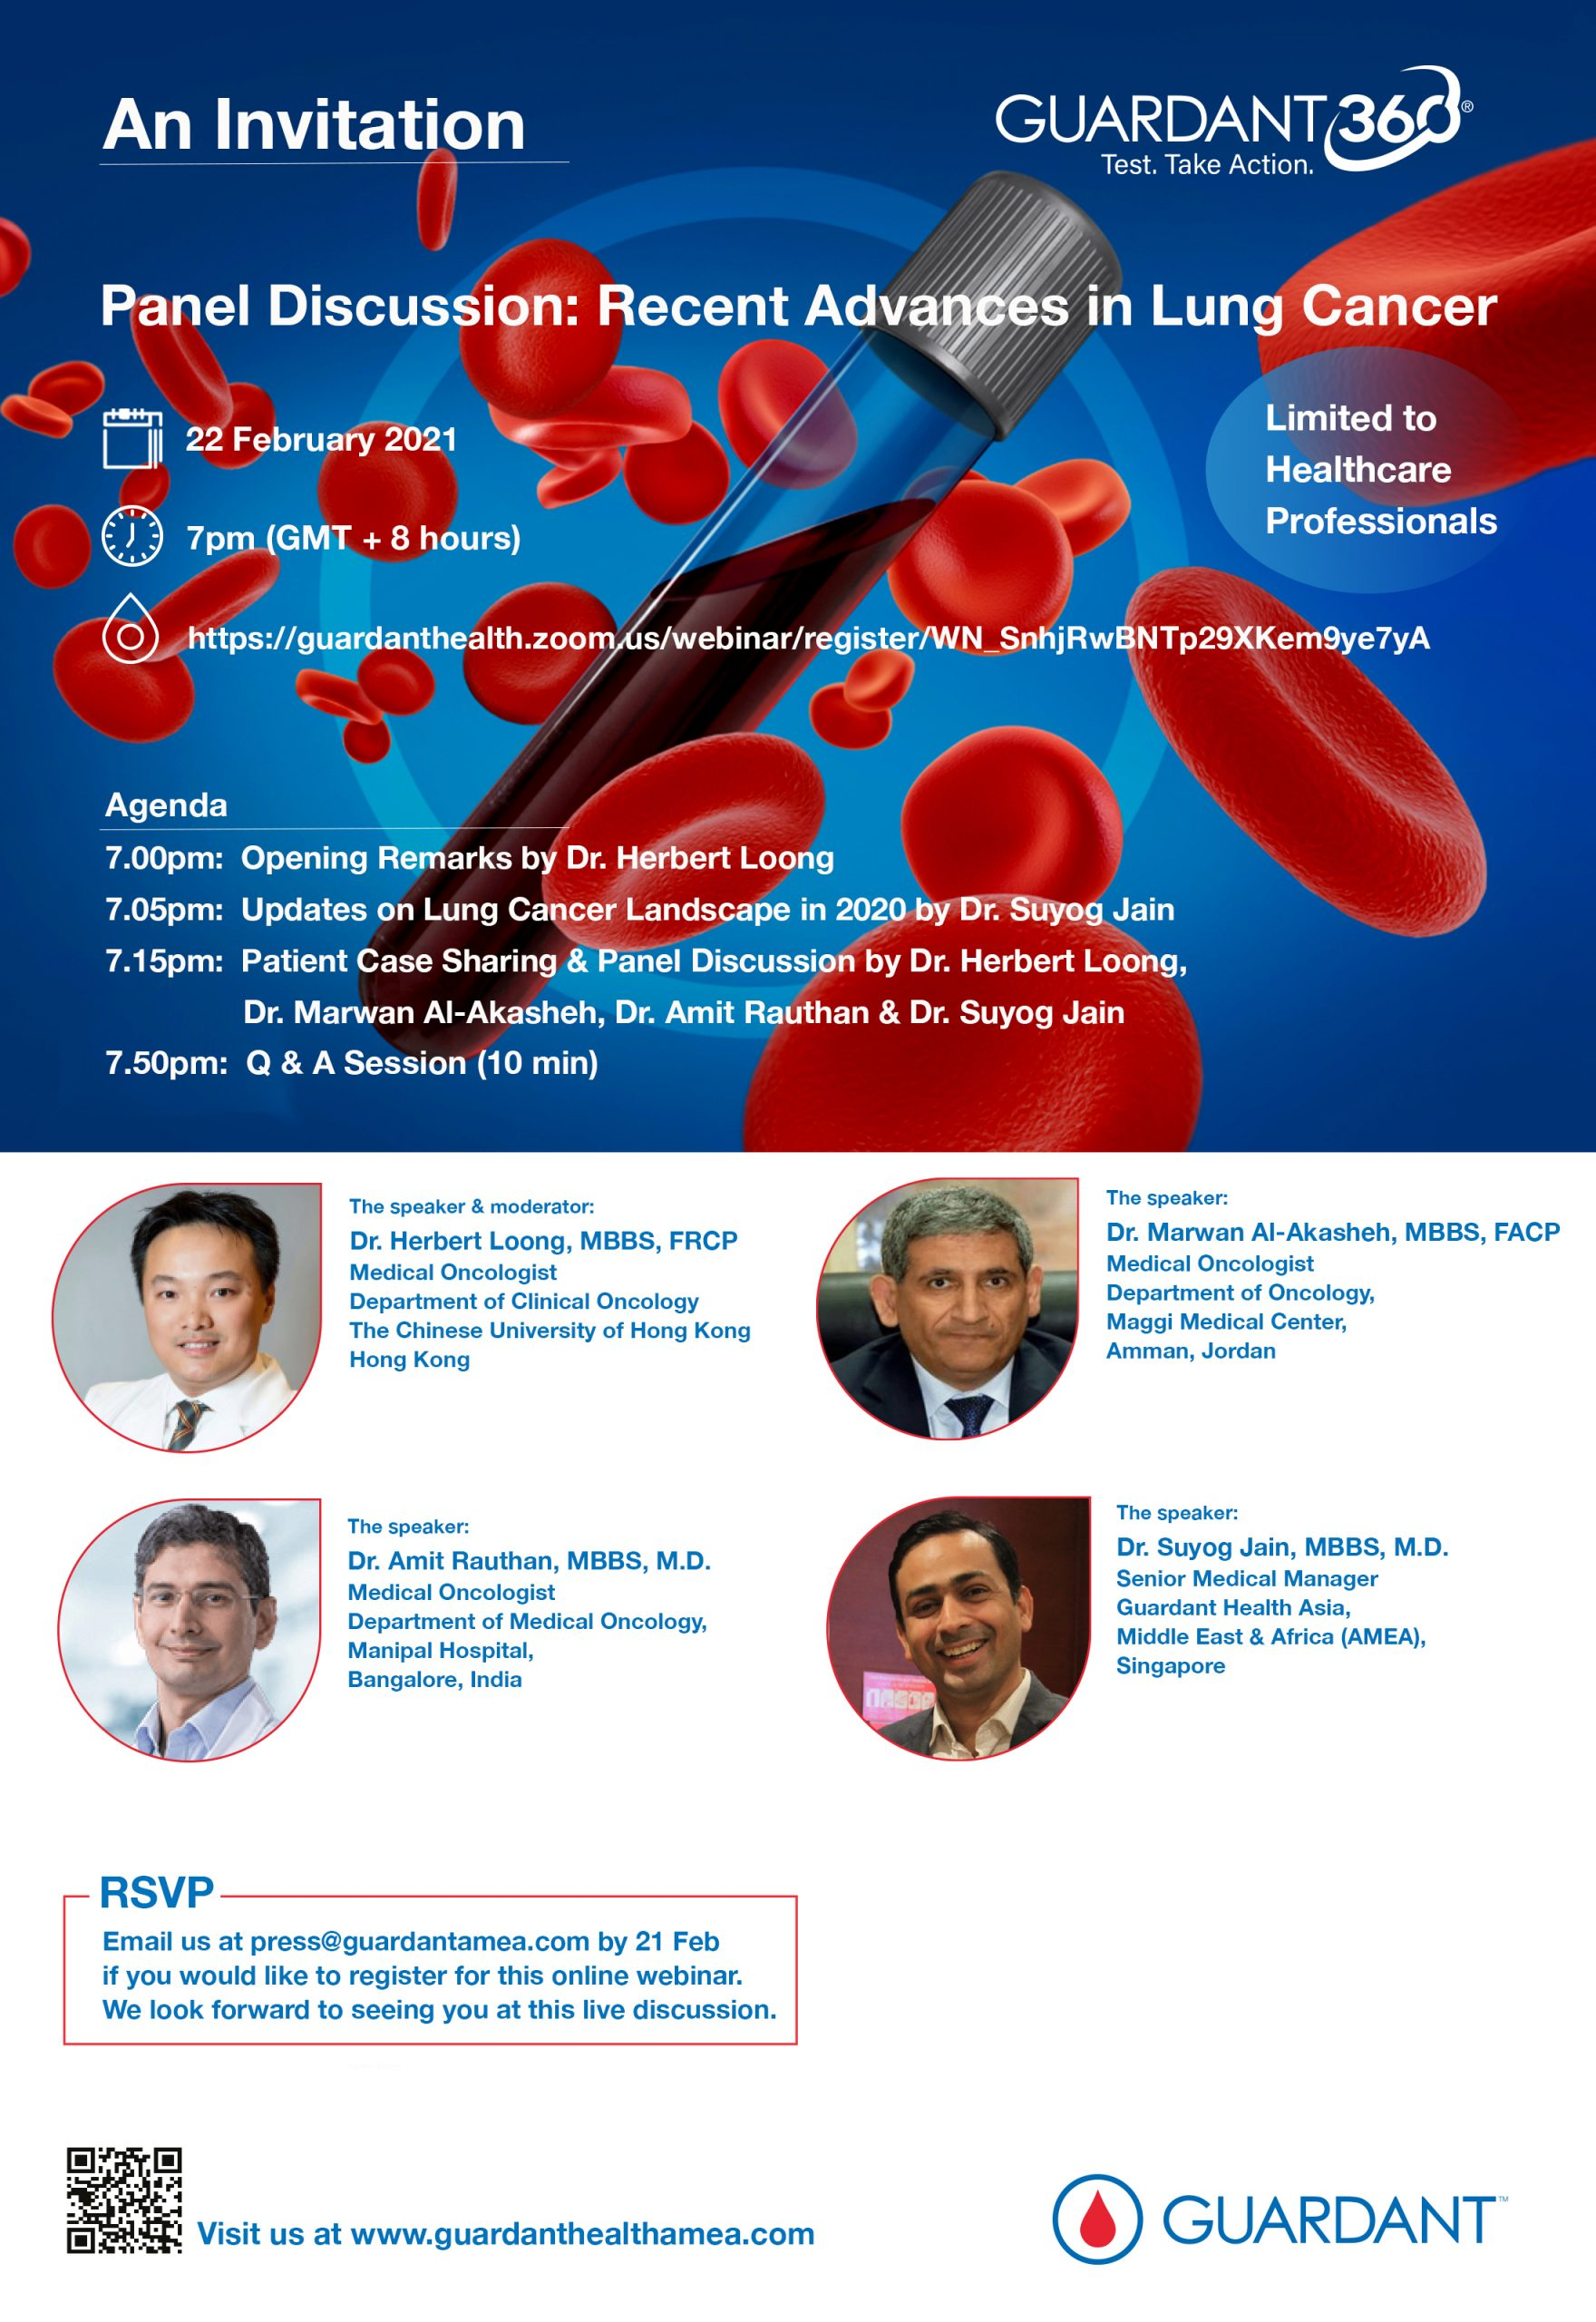 Panel Discussion: Recent Advances in Lung Cancer